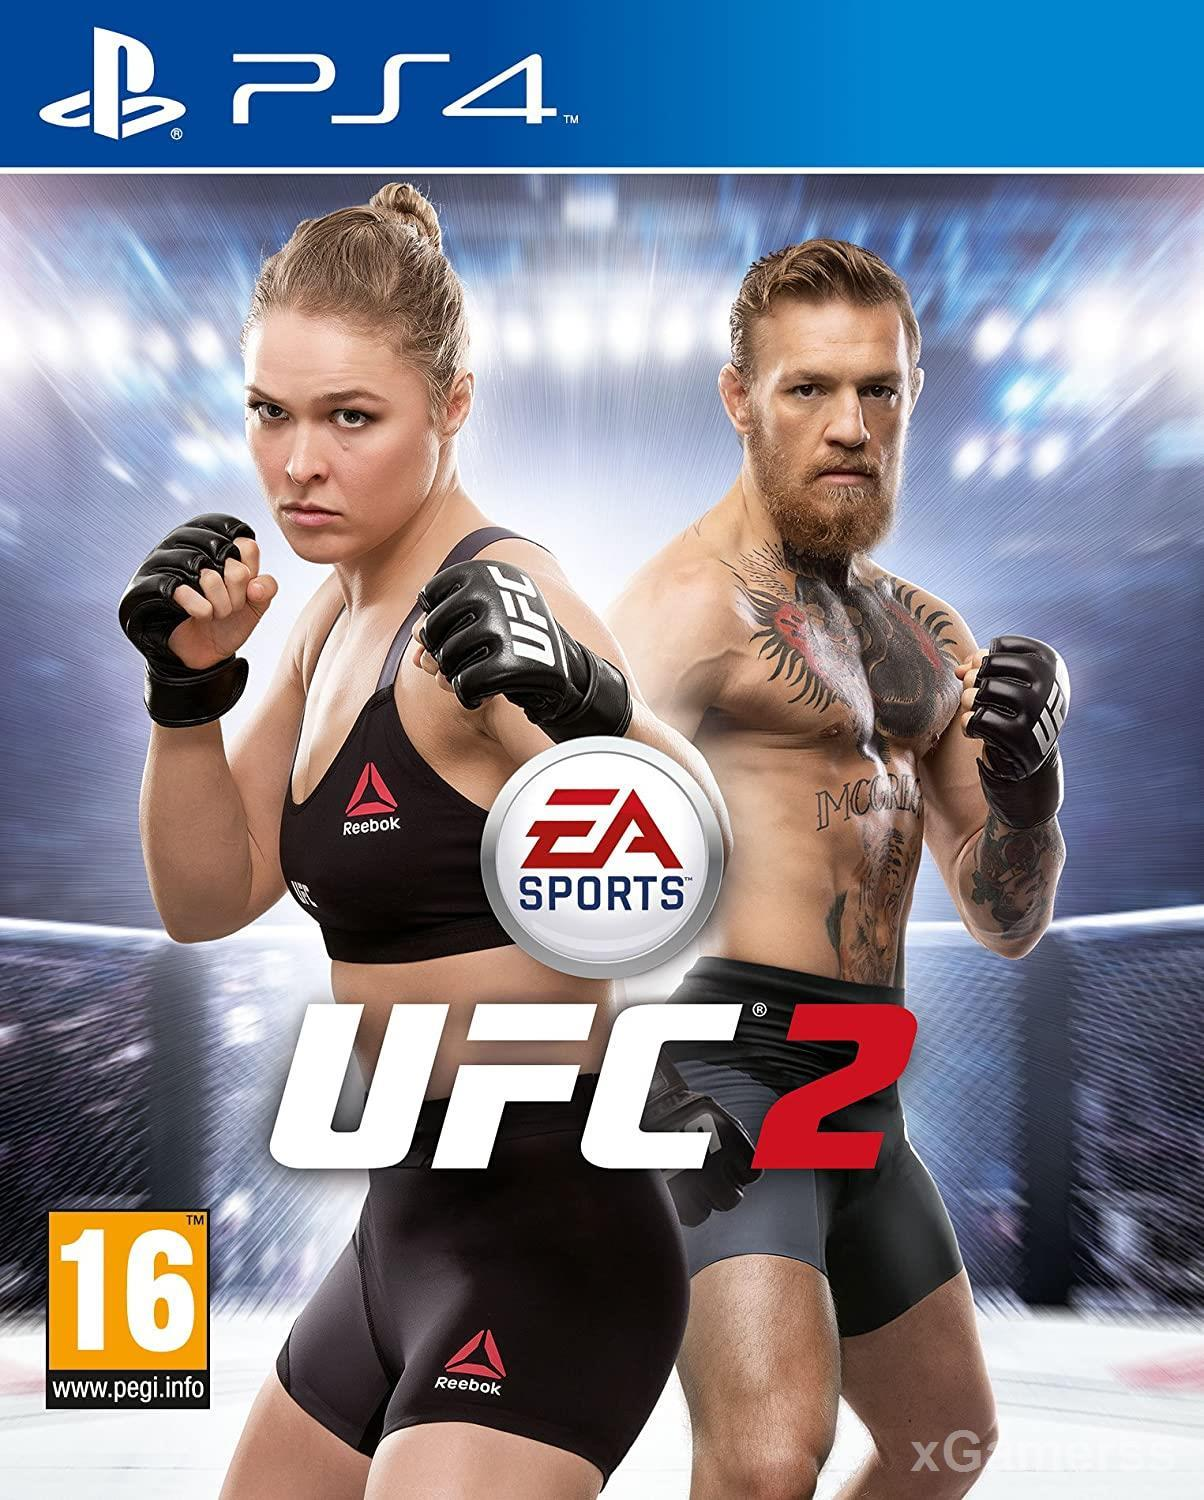 UFC 2 - fight sports, where players might have fractures and bleeds